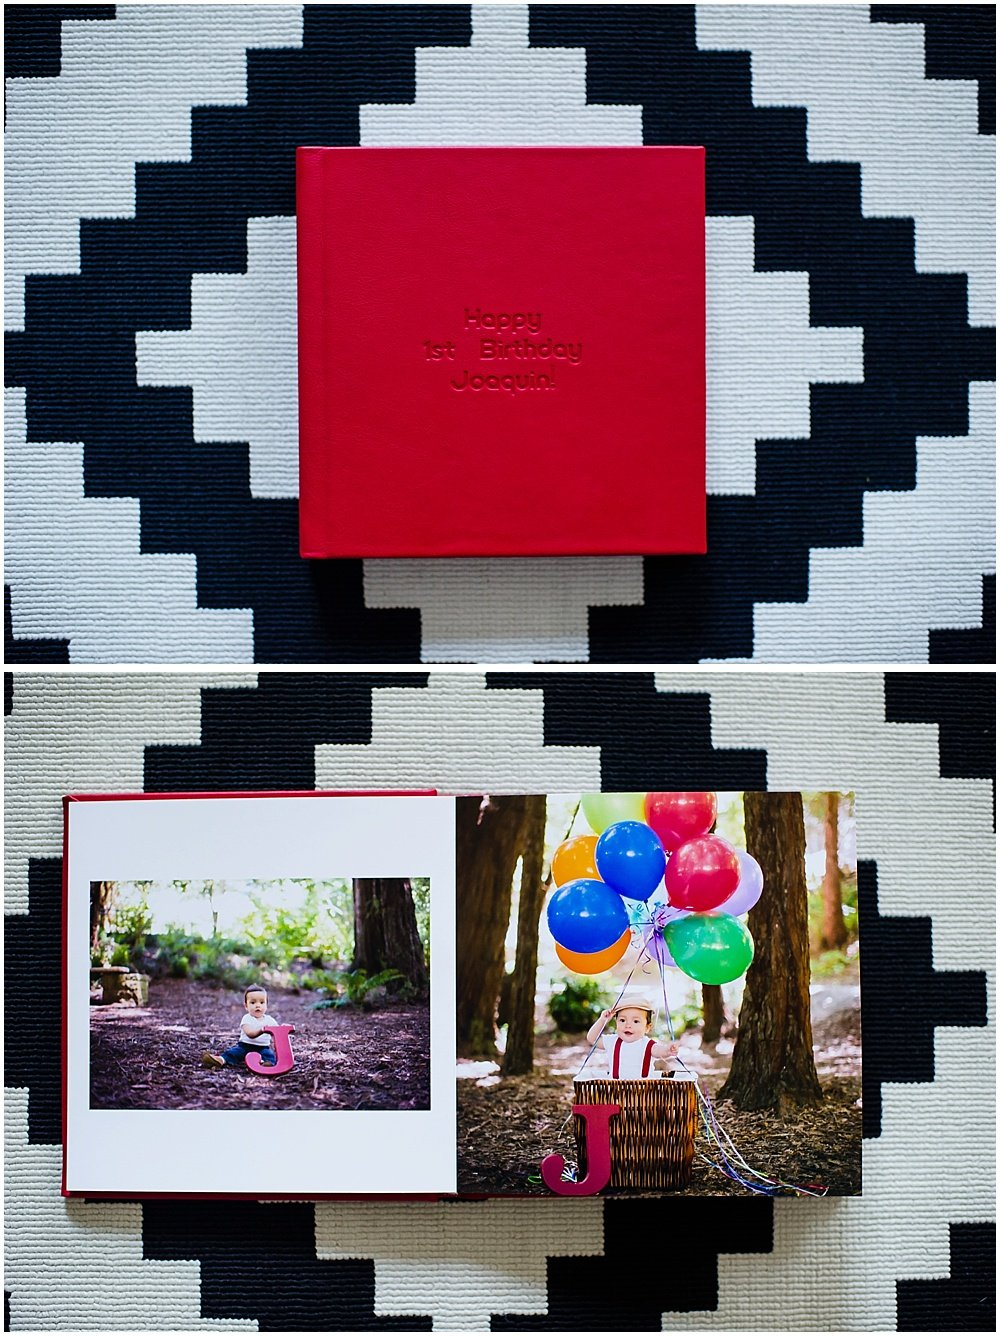 Childs birthday party photo album leaves tangible memories